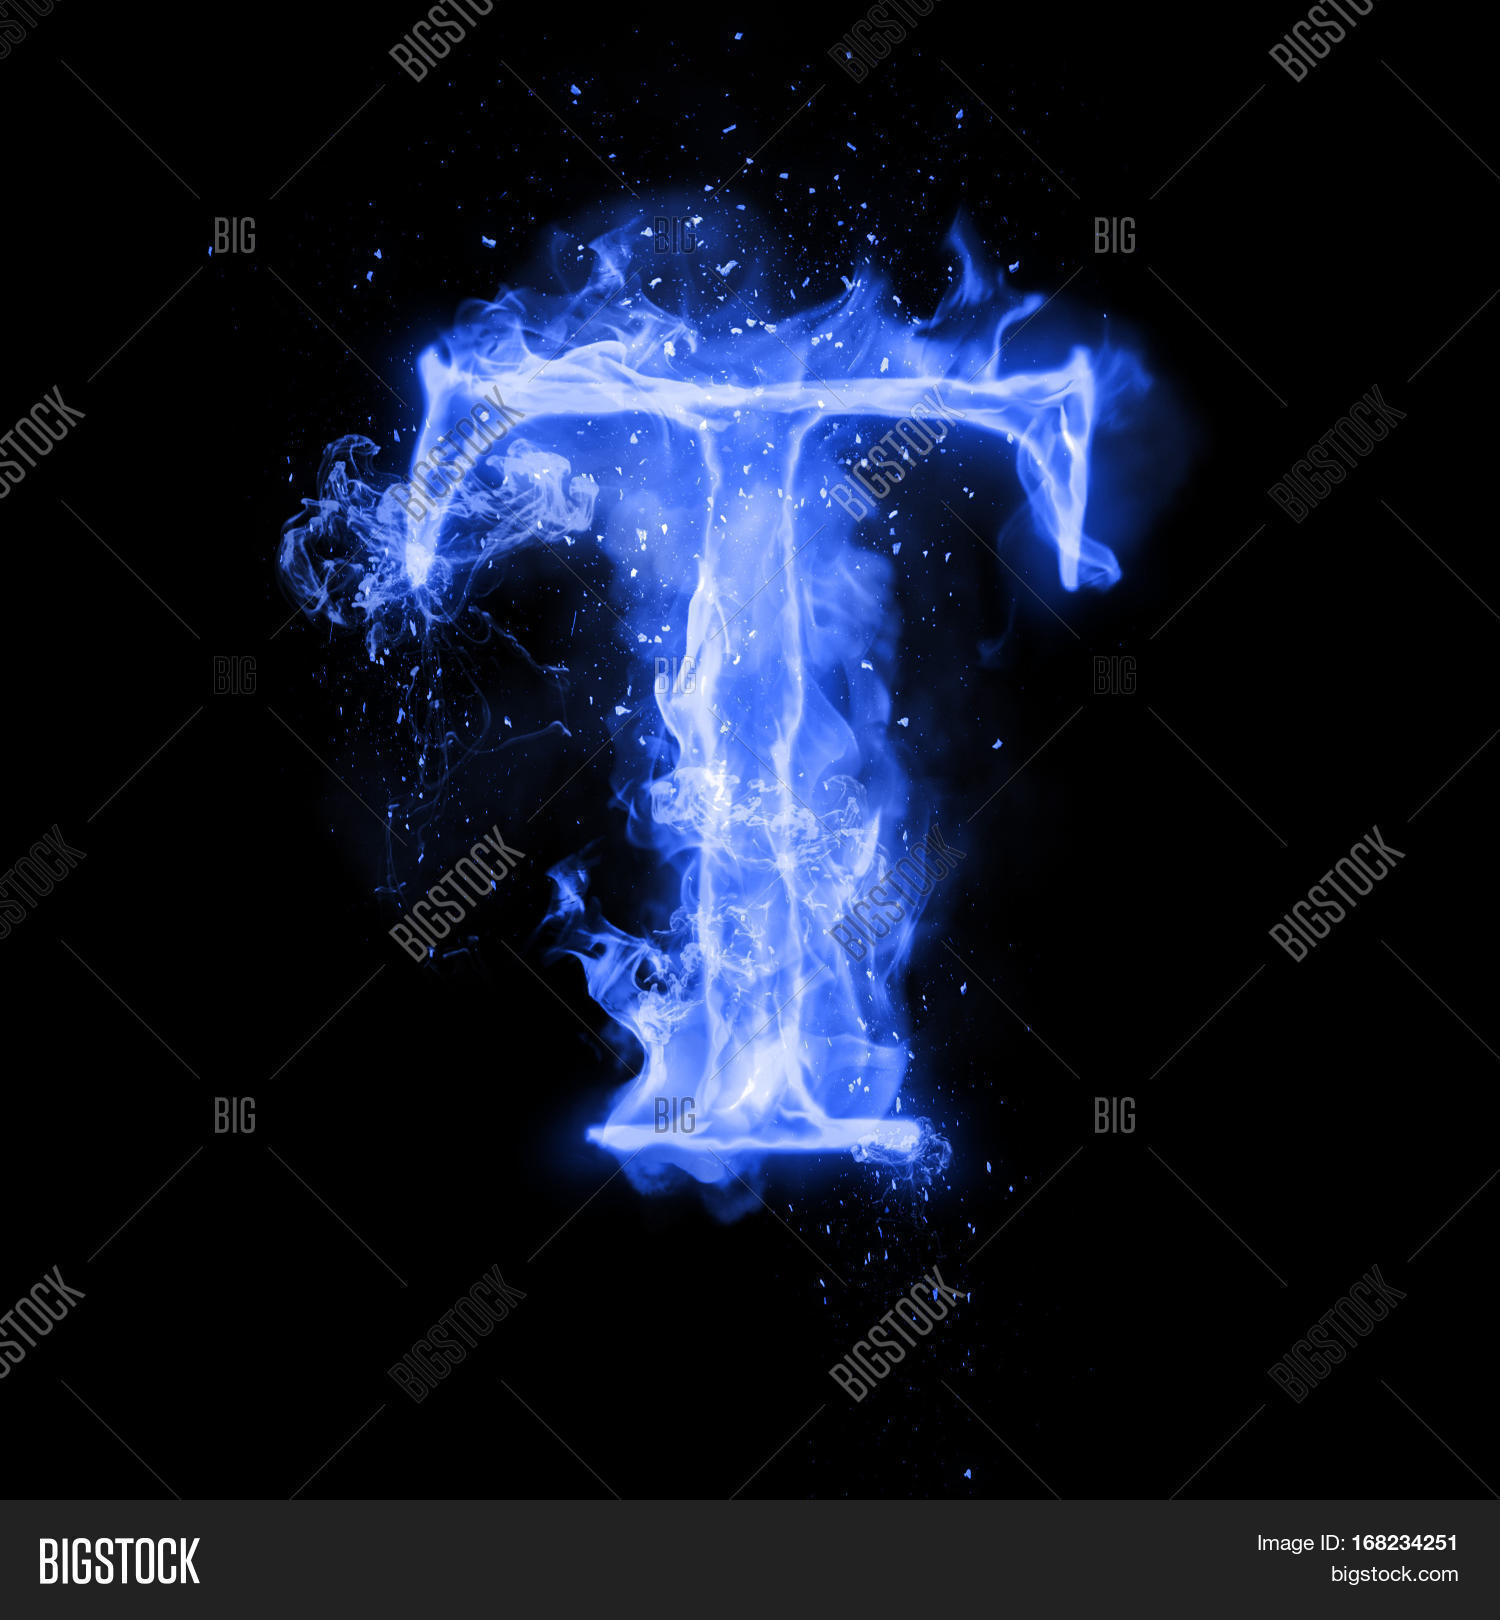 Fire Letter T Burning Blue Flame. Image & Photo   Bigstock